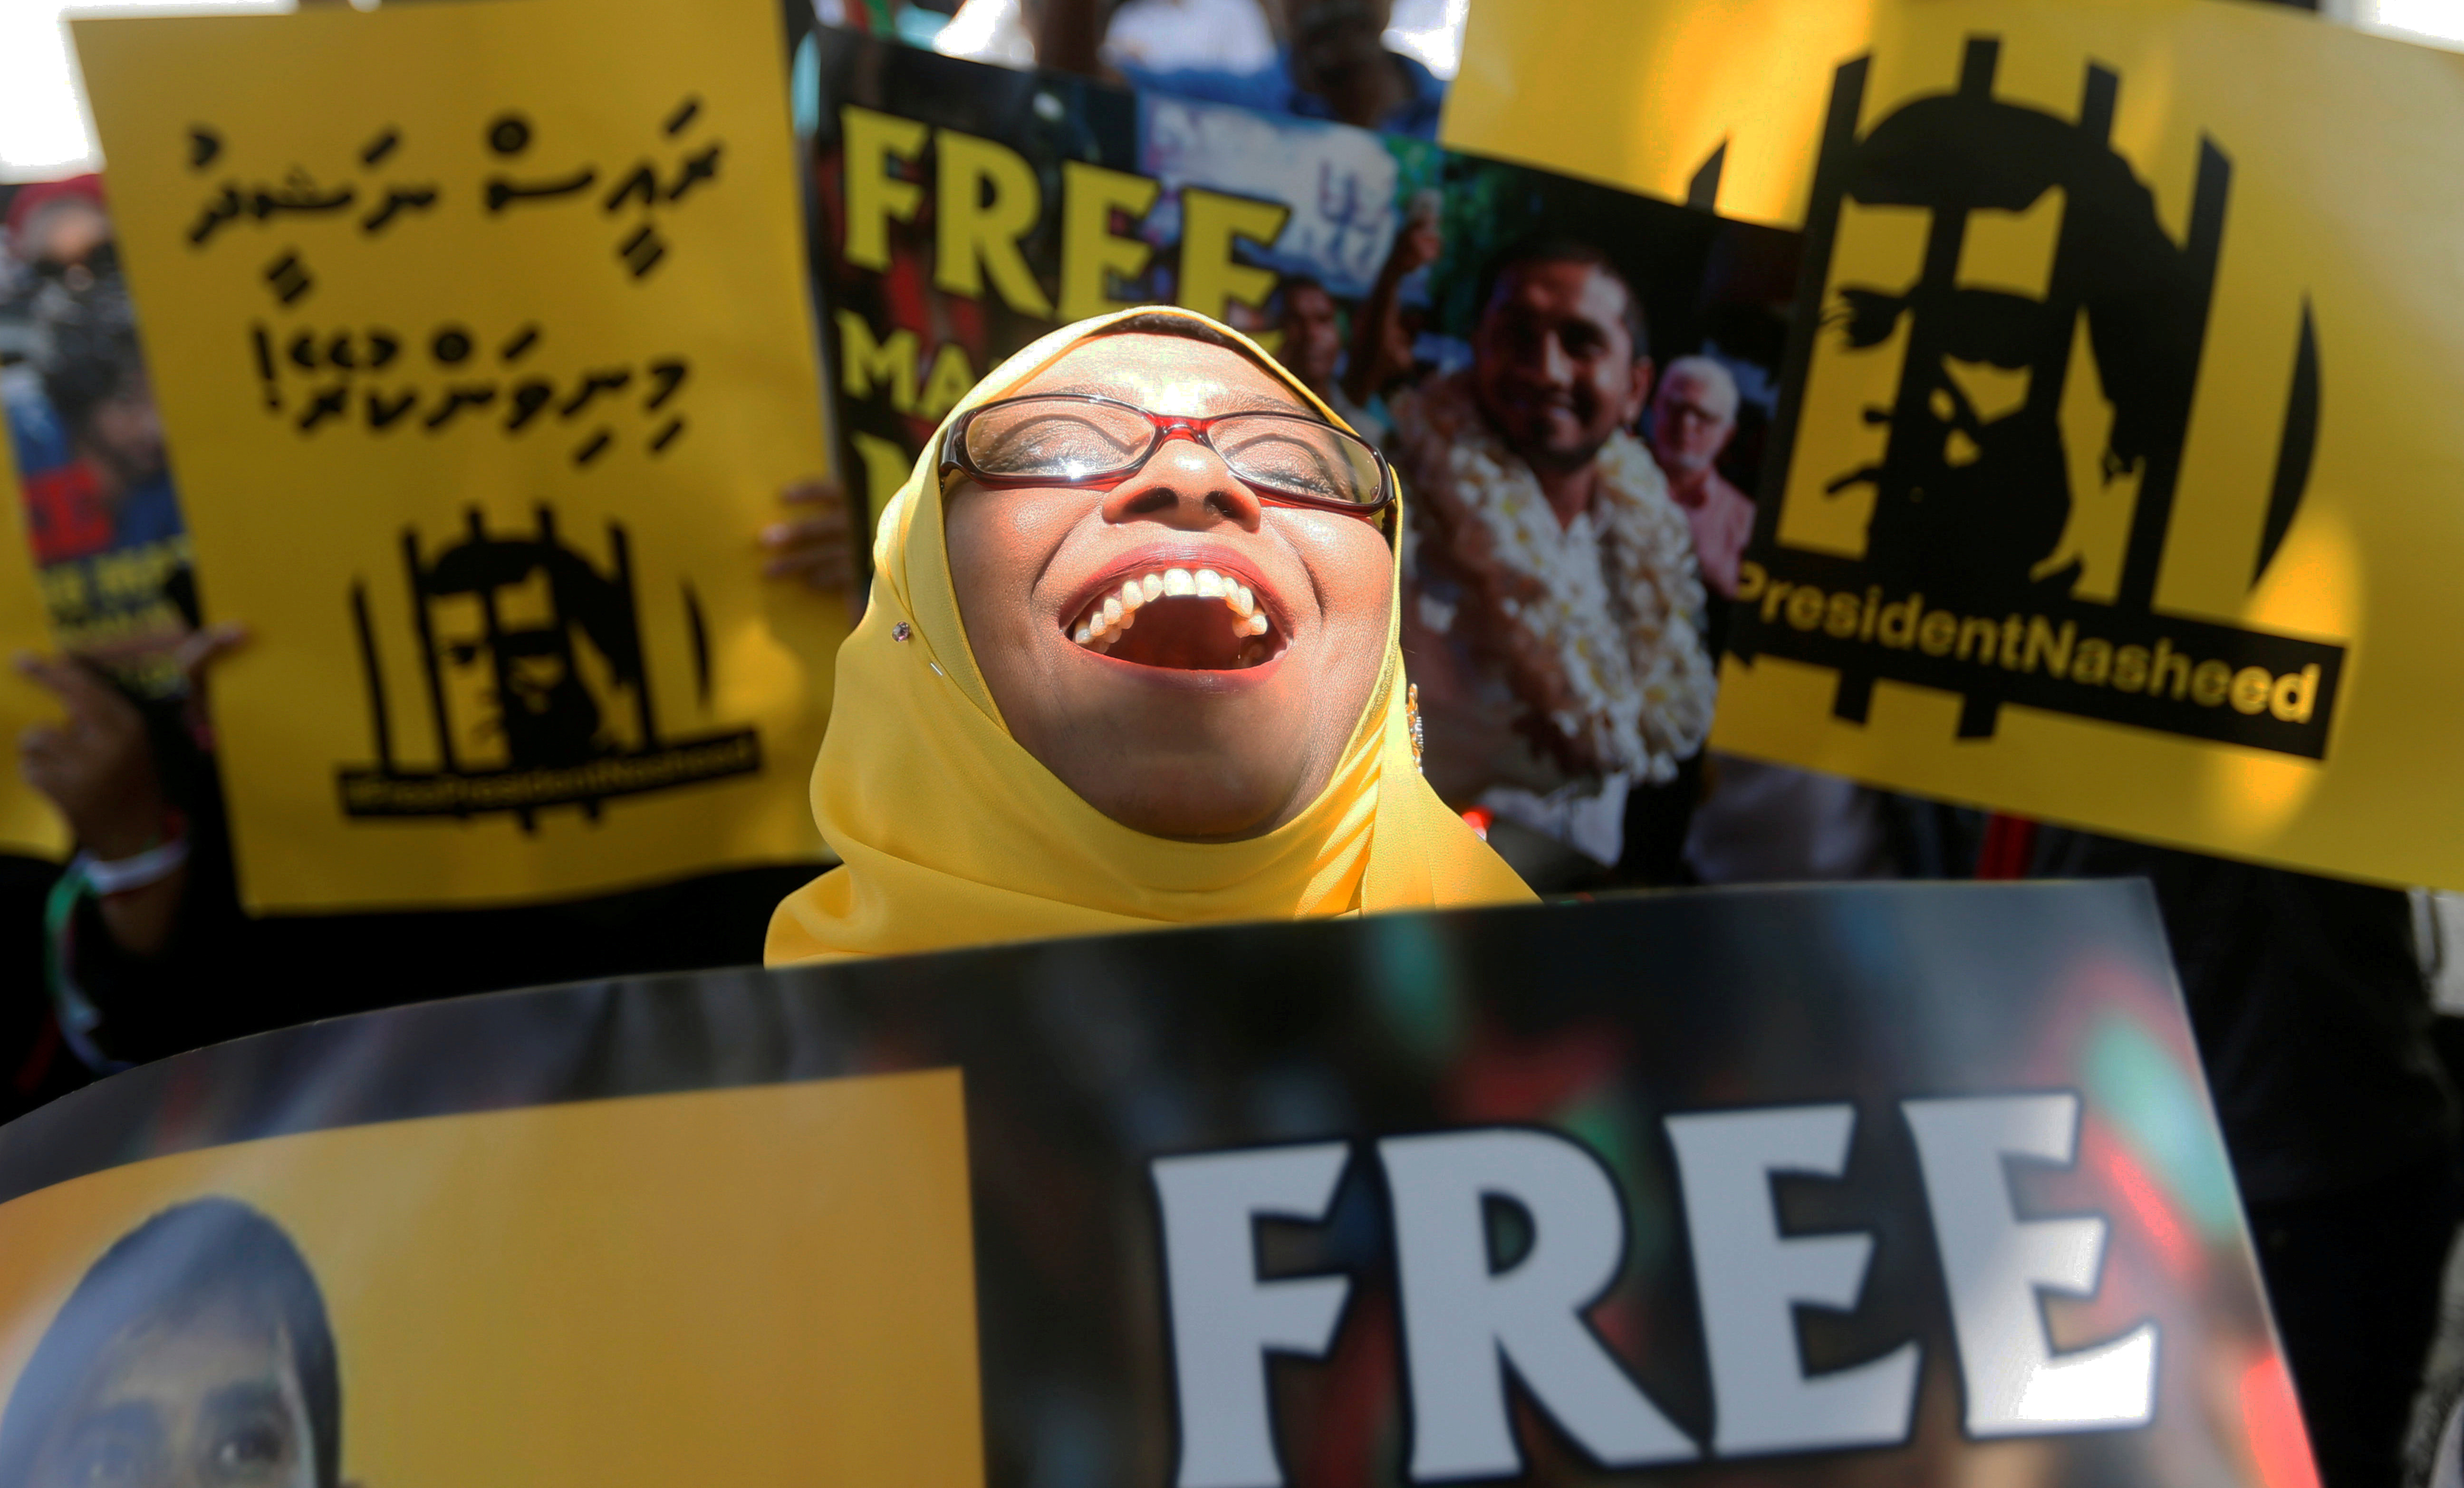 A supporter of former Maldivian president Mohamed Nasheed shouts slogans during a protest against the current president of the Maldives Abdulla Yameen, demanding the release of opposition political prisoners in front of the Maldives embassy in Colombo, Sri Lanka March 6, 2018. REUTERS/Dinuka Liyanawatte     TPX IMAGES OF THE DAY - RC130F0BC5C0